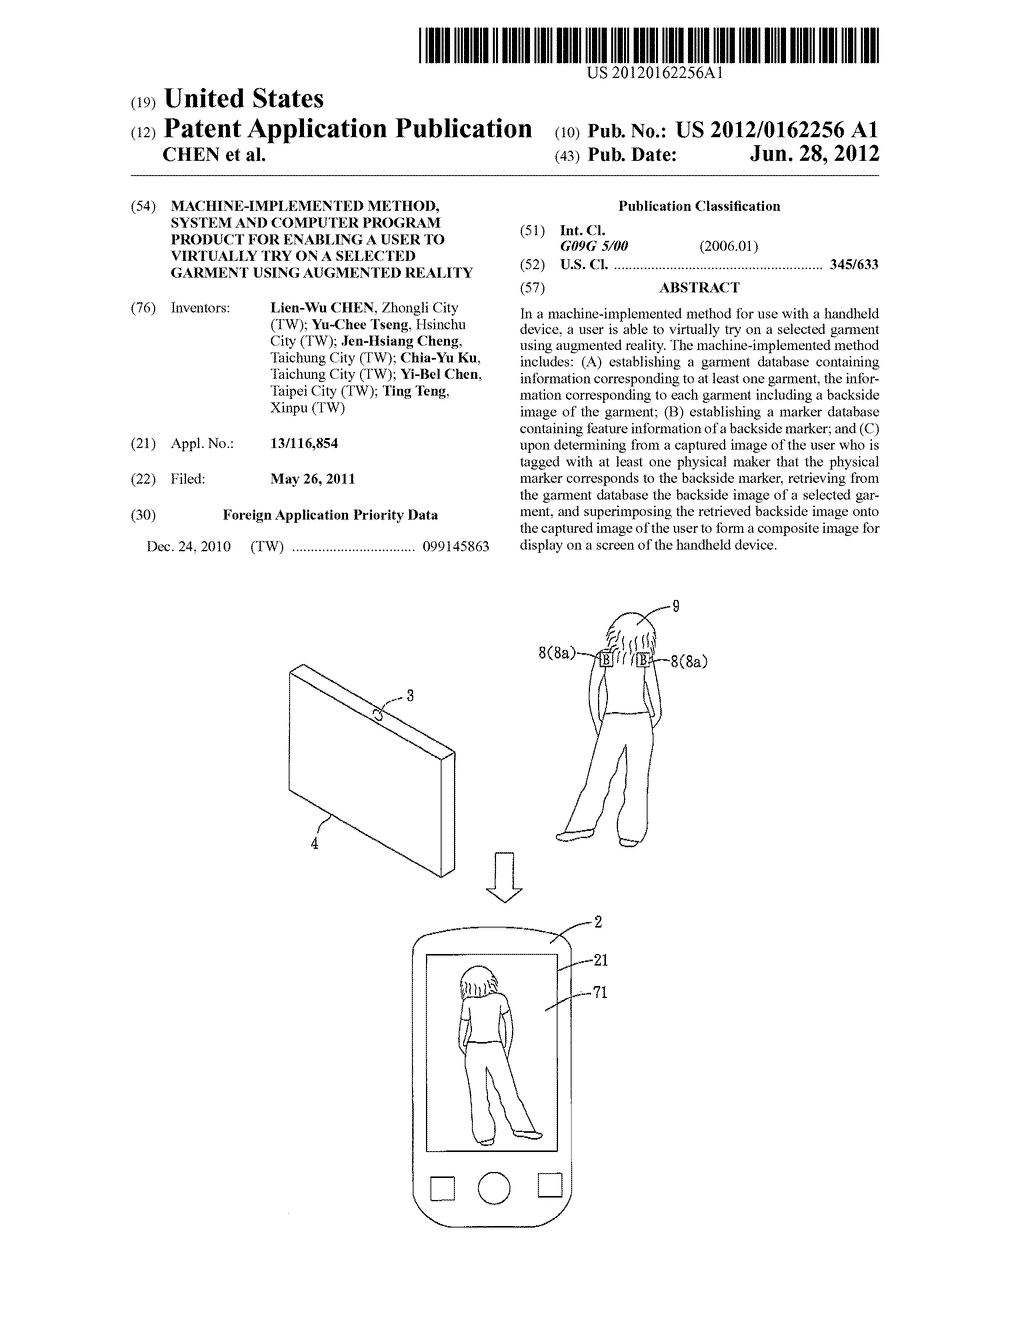 MACHINE-IMPLEMENTED METHOD, SYSTEM AND COMPUTER PROGRAM PRODUCT FOR     ENABLING A USER TO VIRTUALLY TRY ON A SELECTED GARMENT USING AUGMENTED     REALITY - diagram, schematic, and image 01